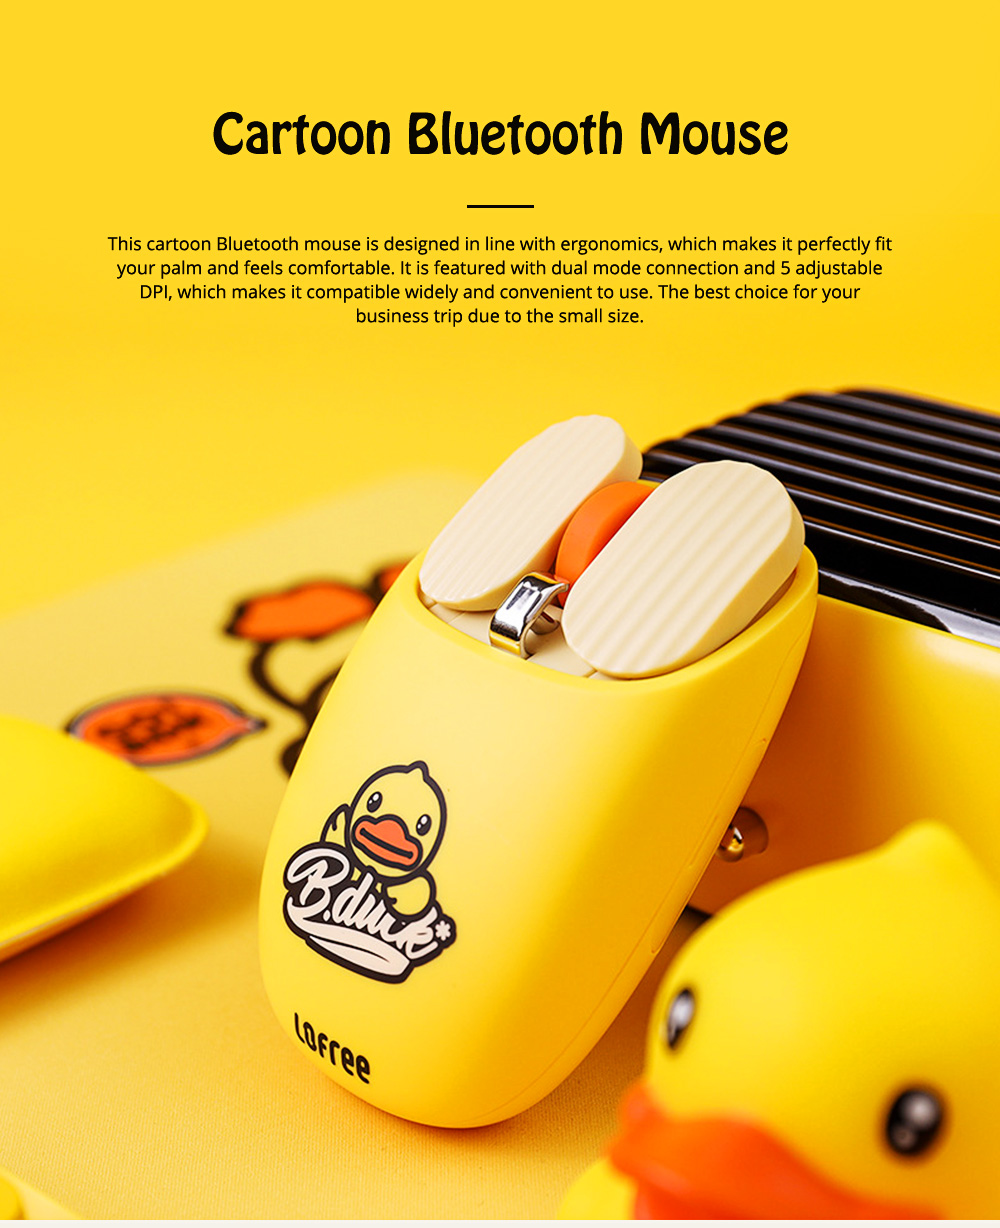 LOFREE Dual Mode Yellow Duck Bluetooth Mouse with 5-level Adjustable DPI Up to 3600, Yellow Duck Cartoon Wireless Mouse 0